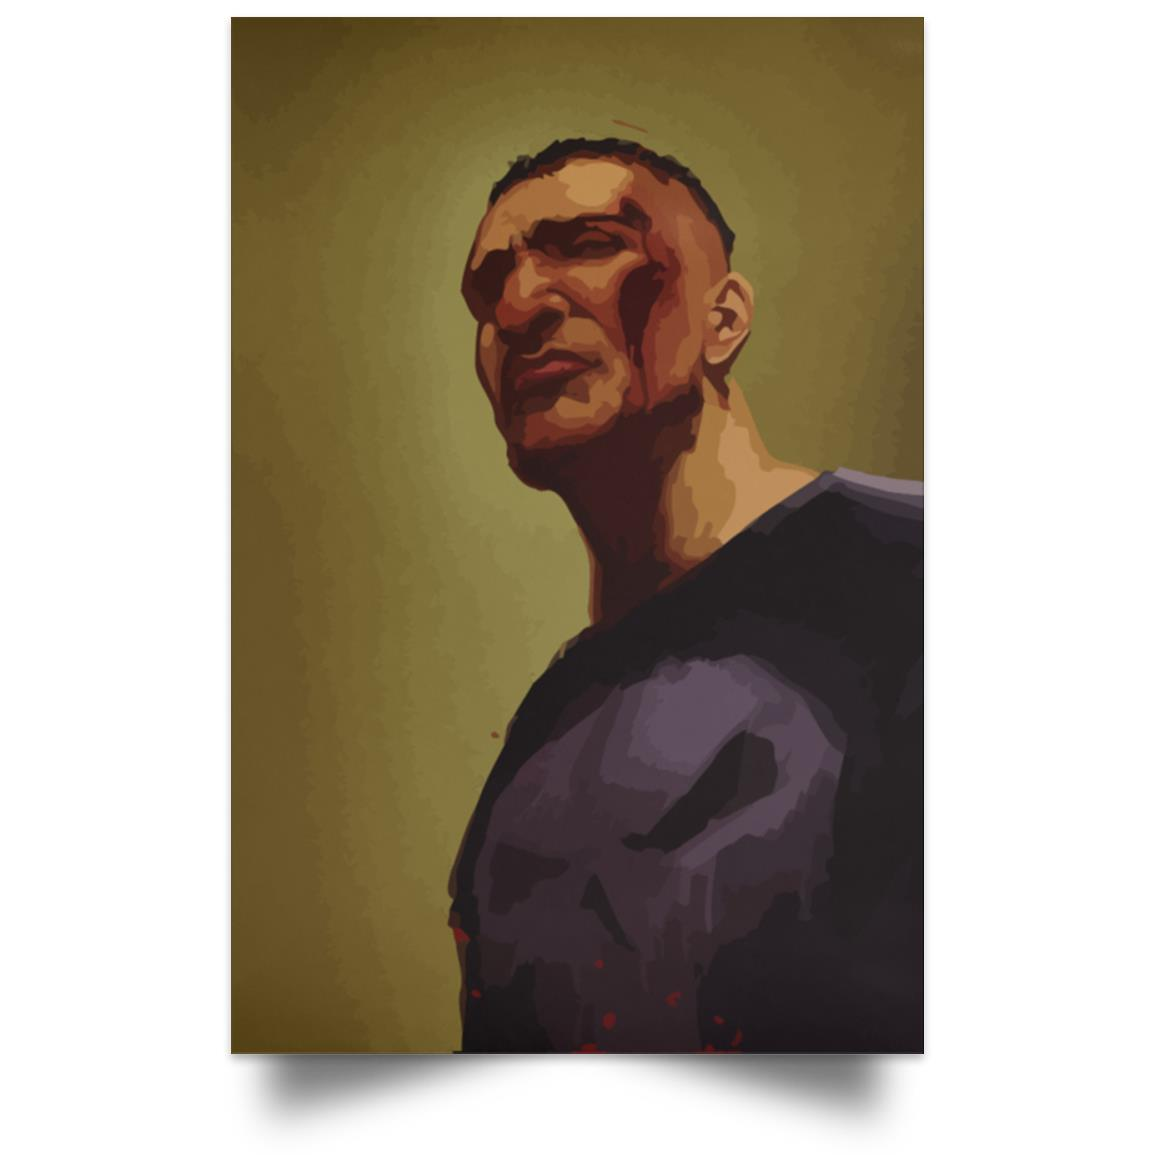 POSTER PUNISHER 1